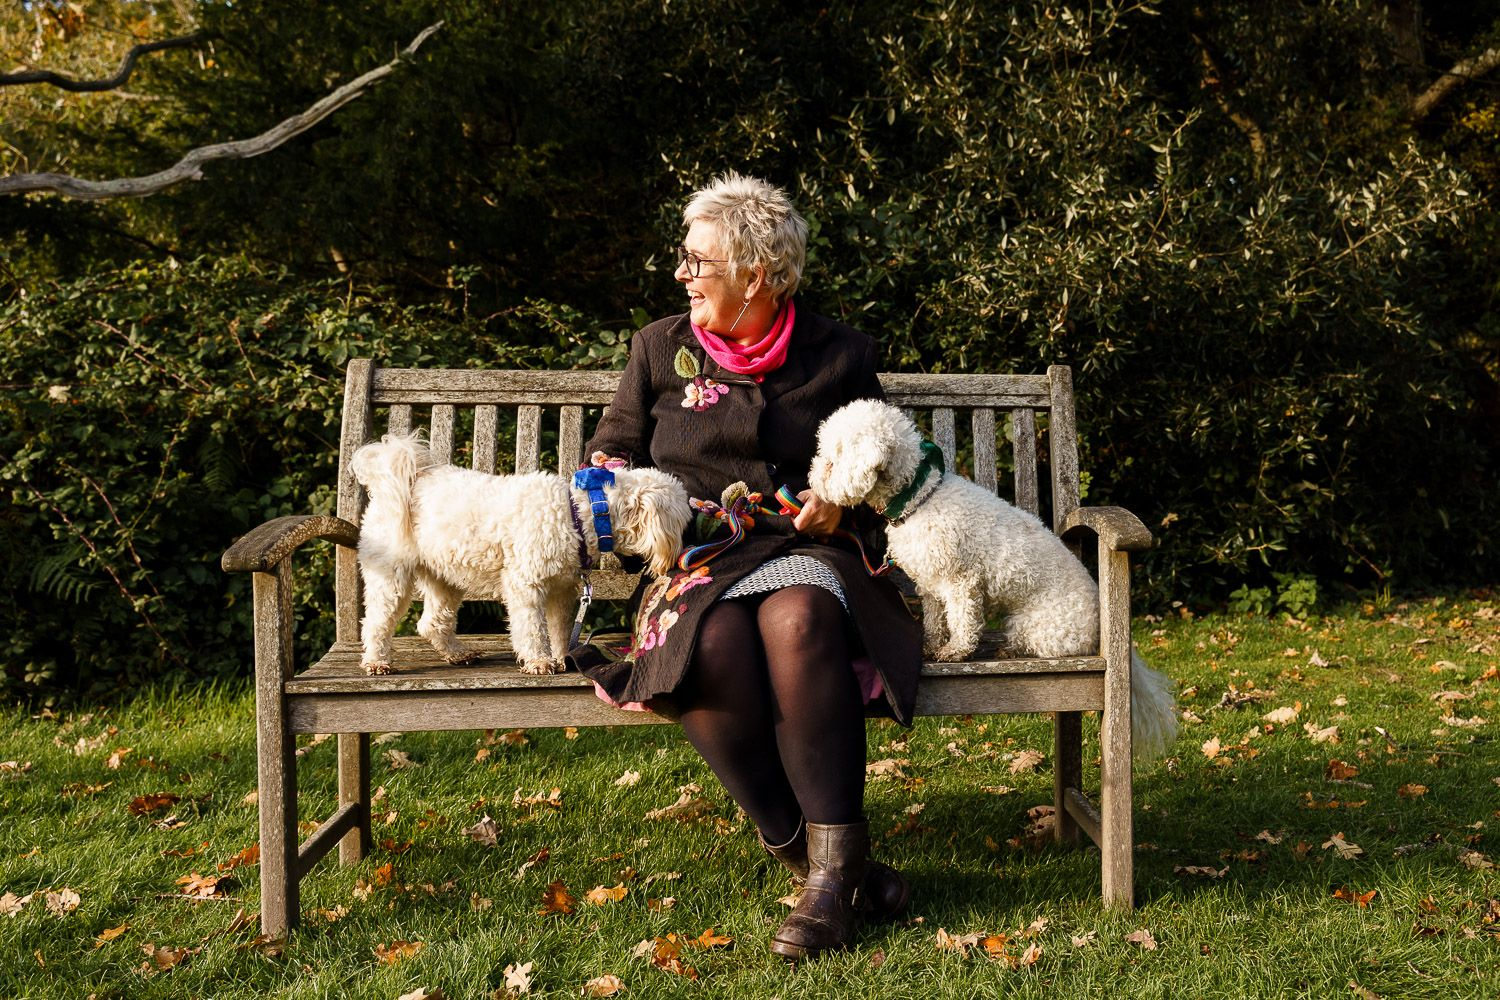 Woman sits on a bench in the sun with her two dogs wearing bow ties at a wedding. Top 10 dog-friendly wedding tips.